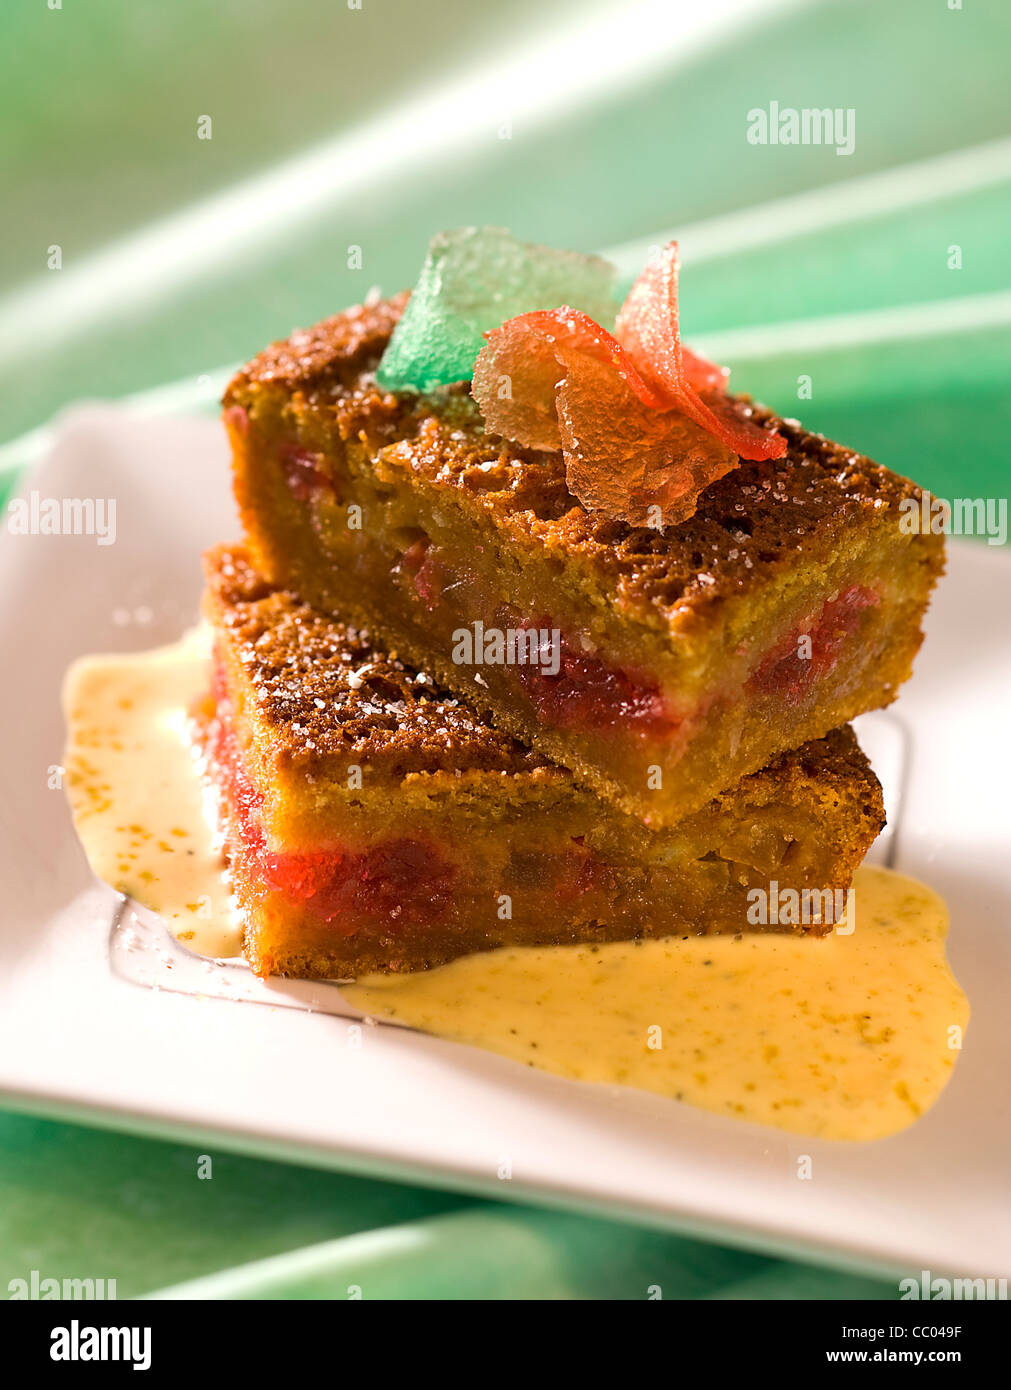 Gingerbread Pudding - Stock Image